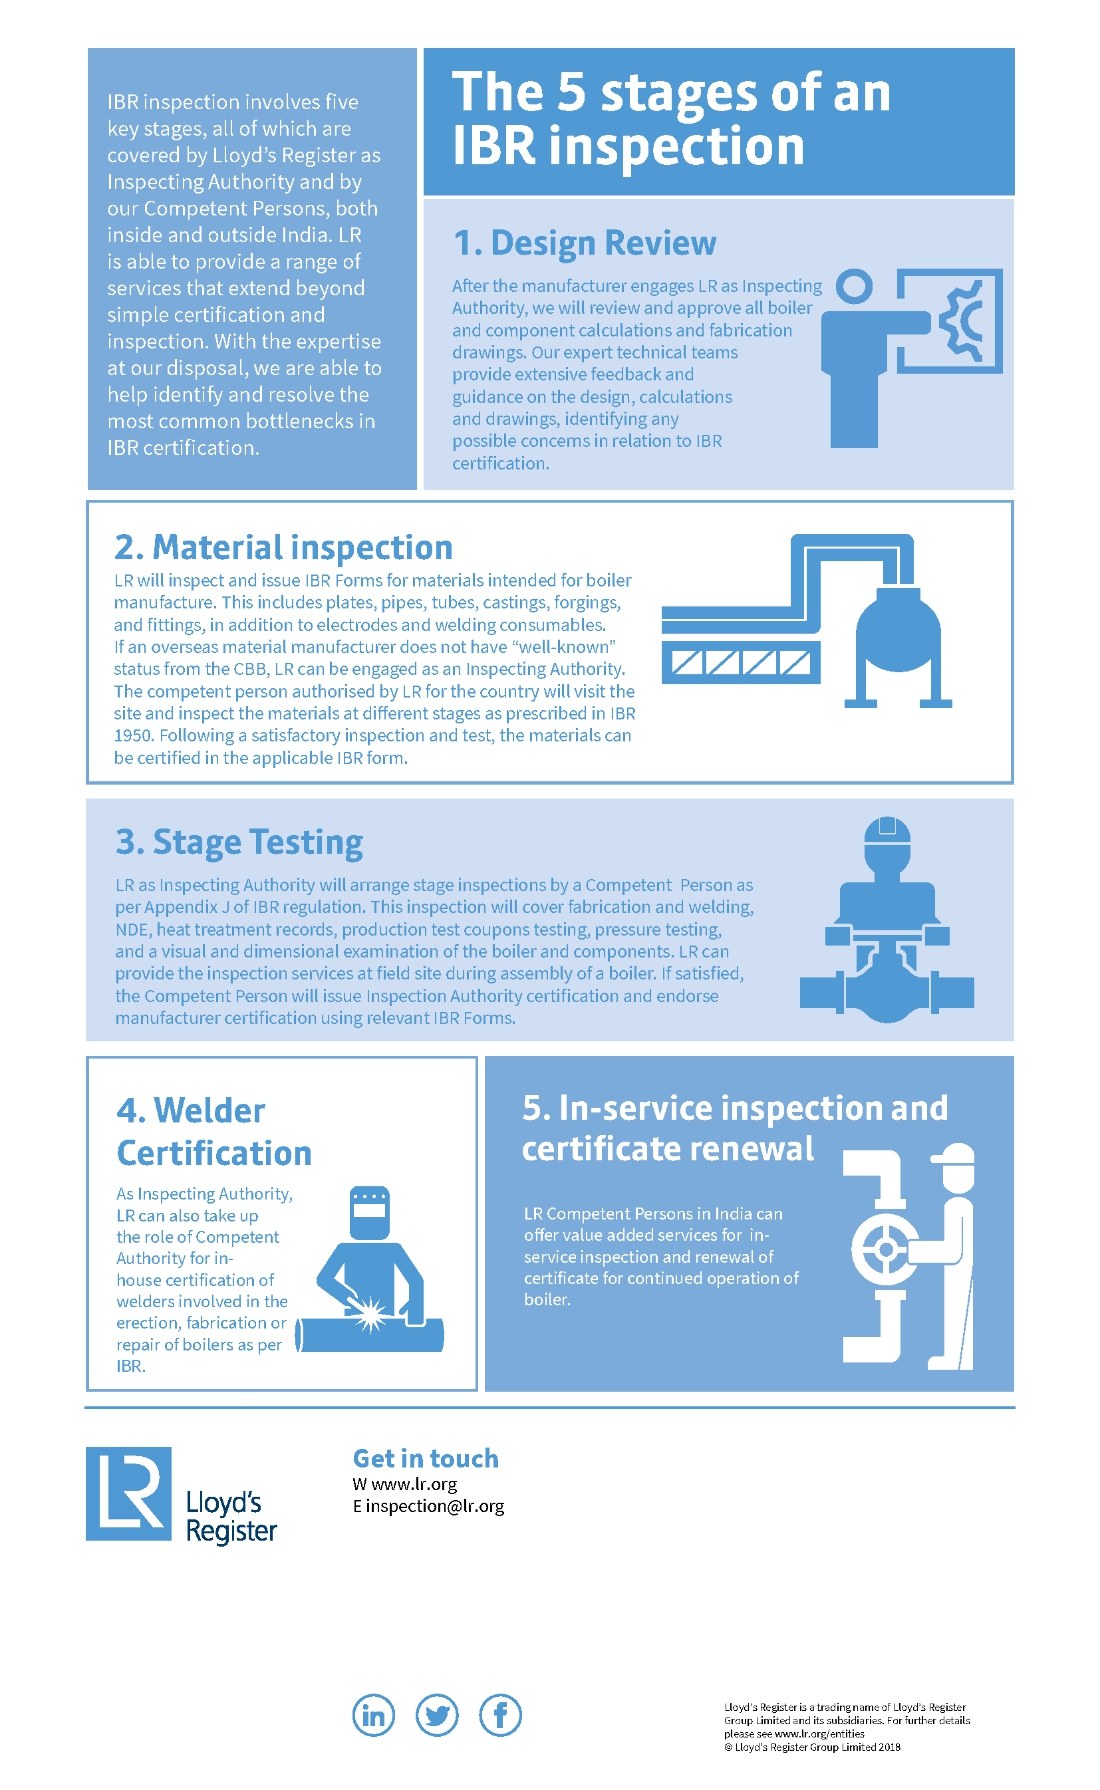 Five stages of an IBR inspection